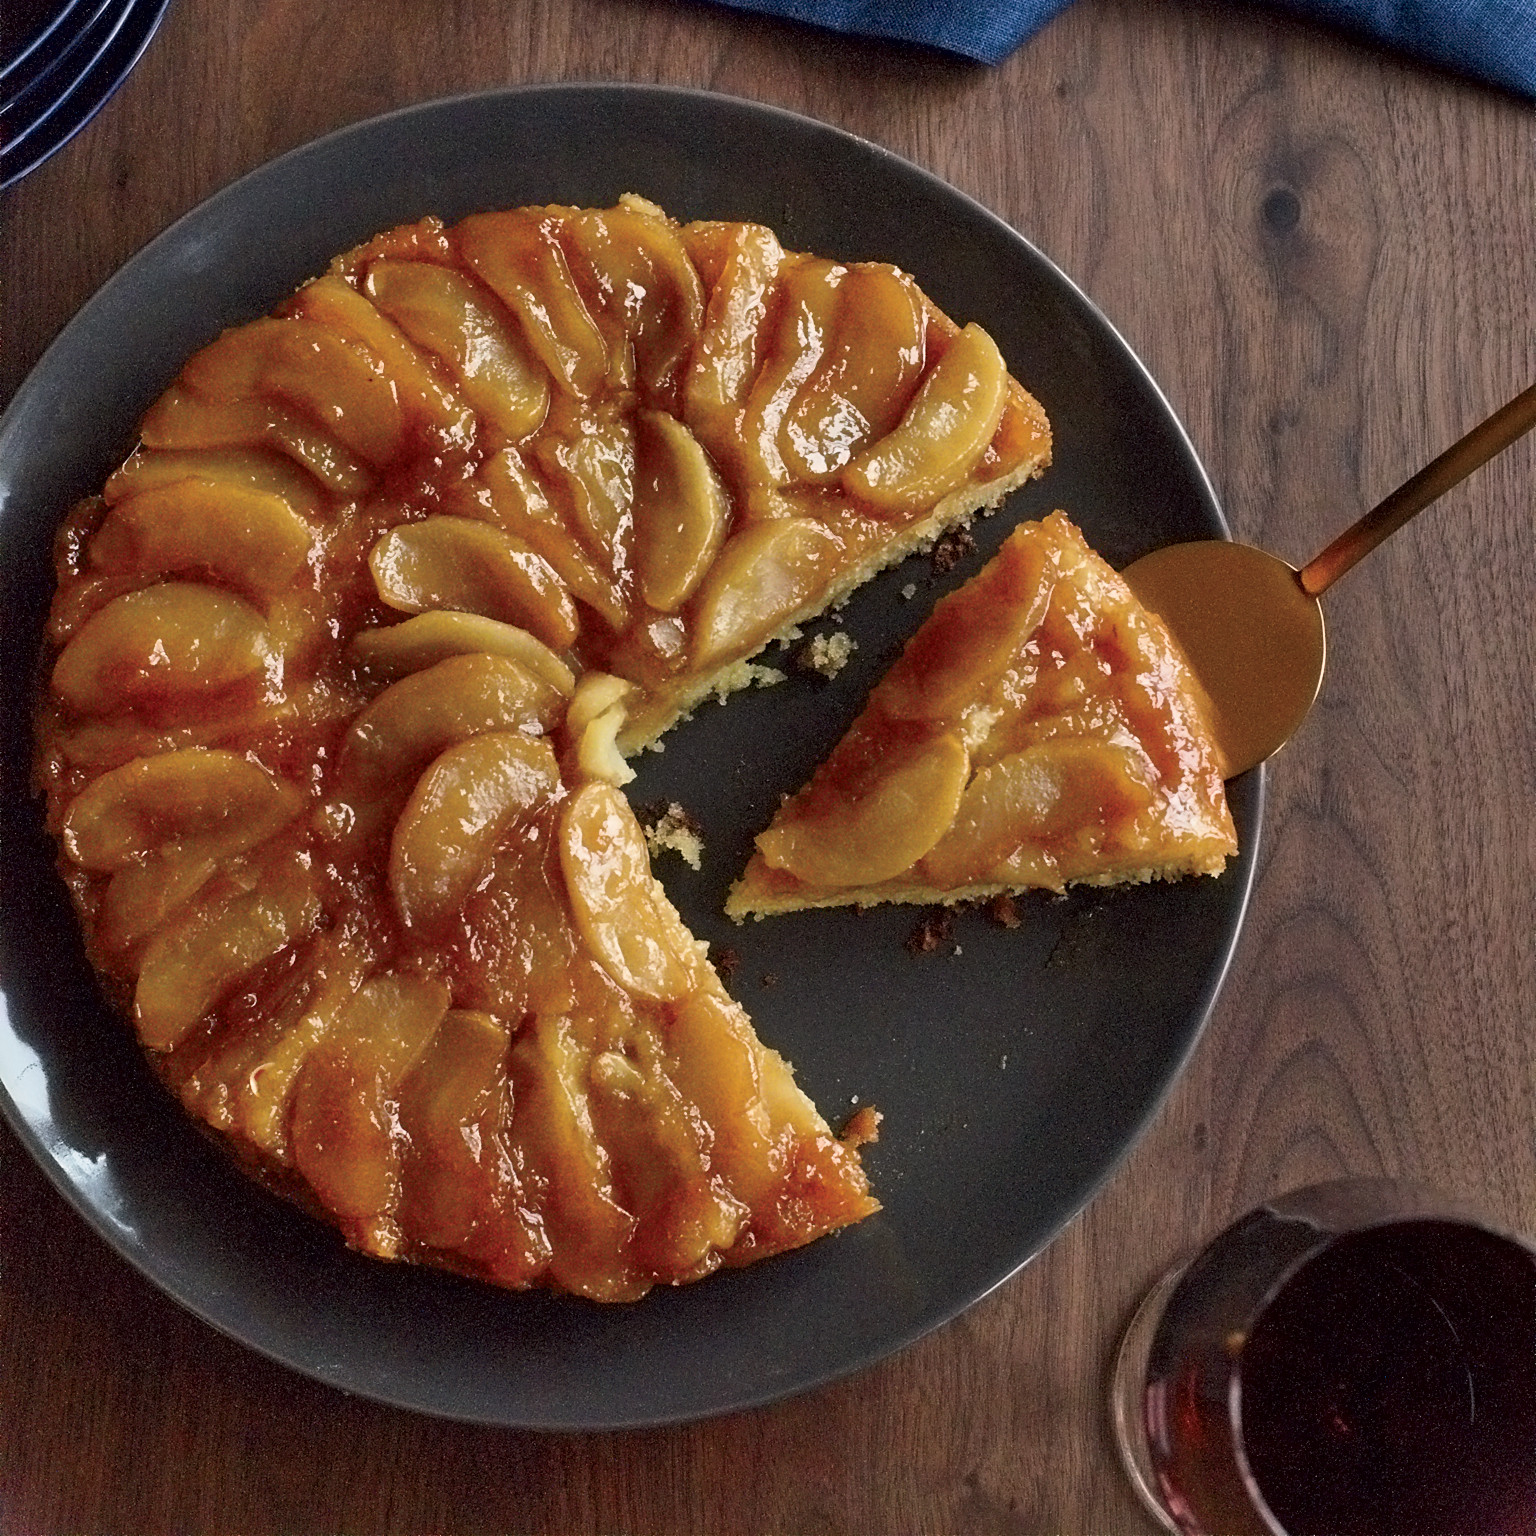 Apple Recipes For Fall  Maple Apple Upside Down Cake Recipe Joanne Chang